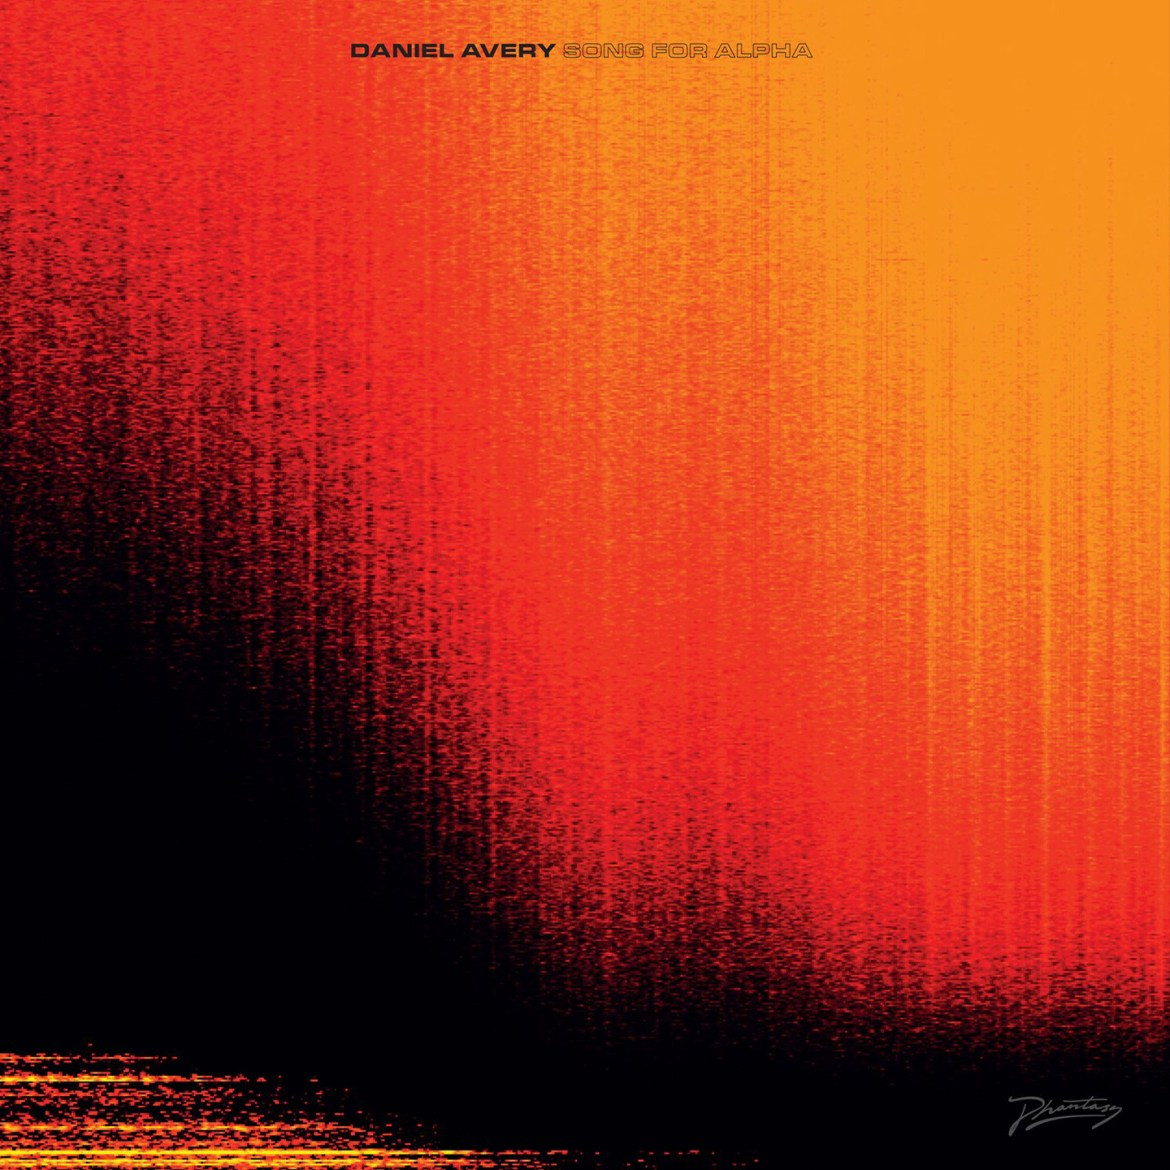 Daniel Avery – Song for Alpha (Phantasy)